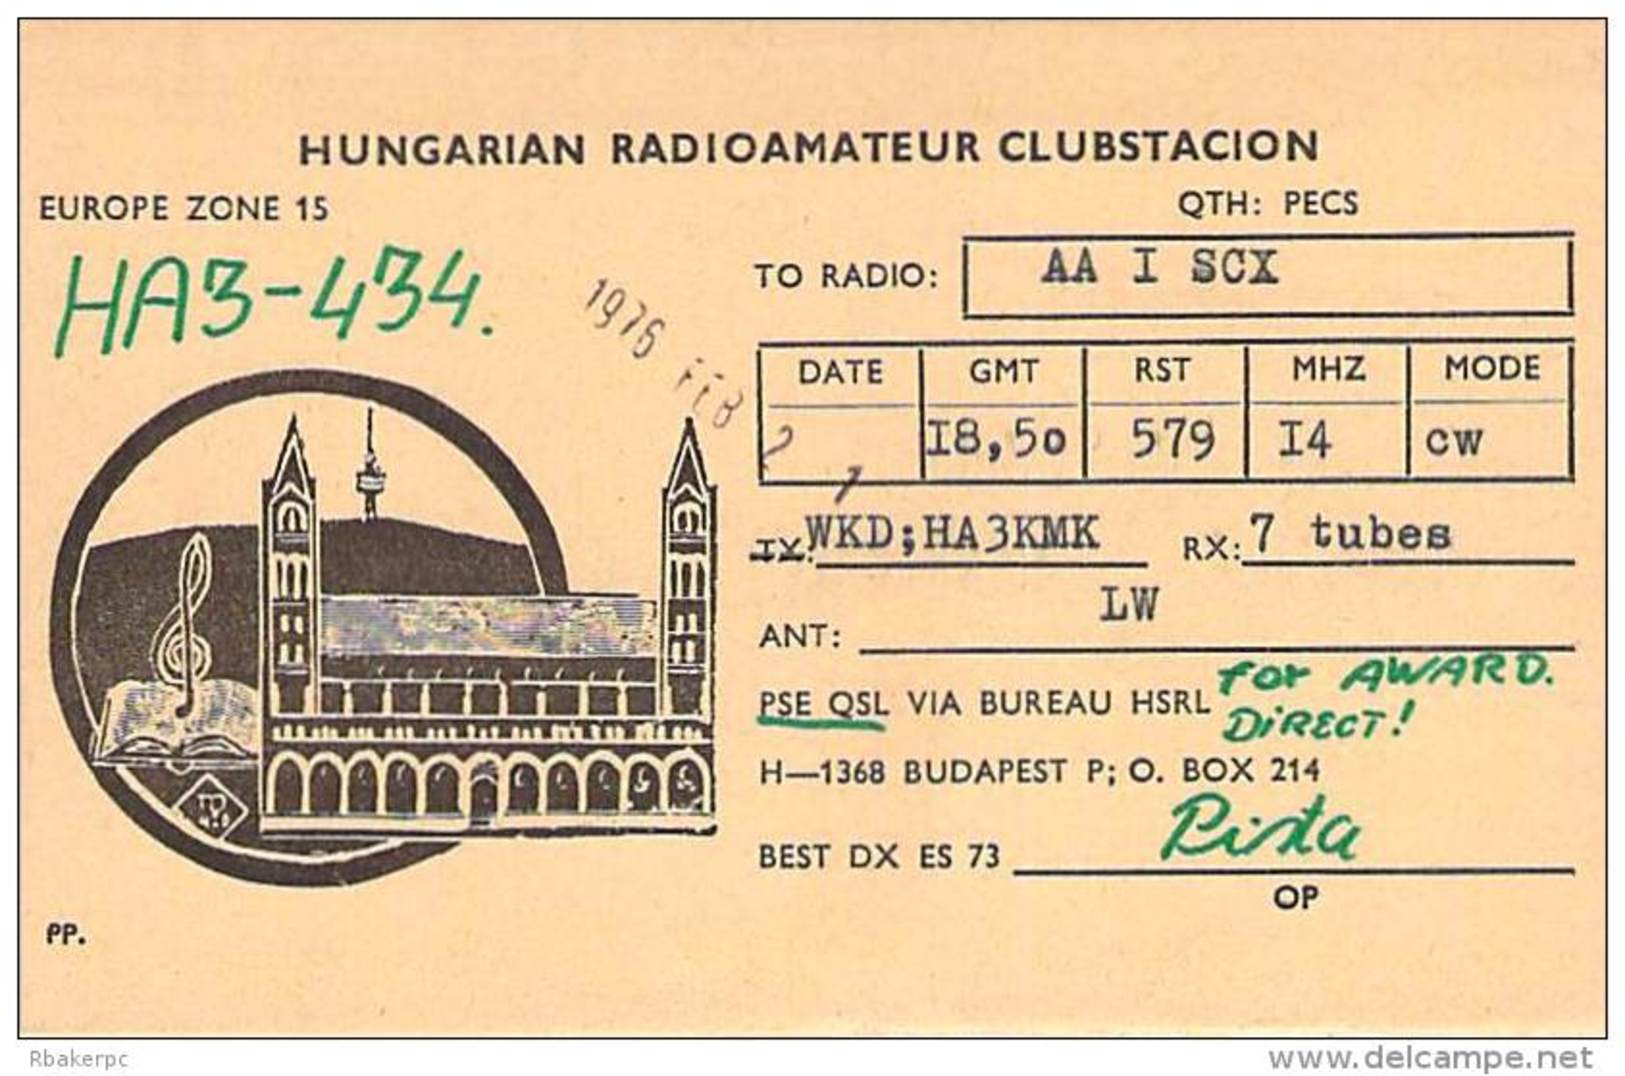 Amateur Radio Contact SWL Card From HA3-434 In Hungary - 1976 - Radio Amateur